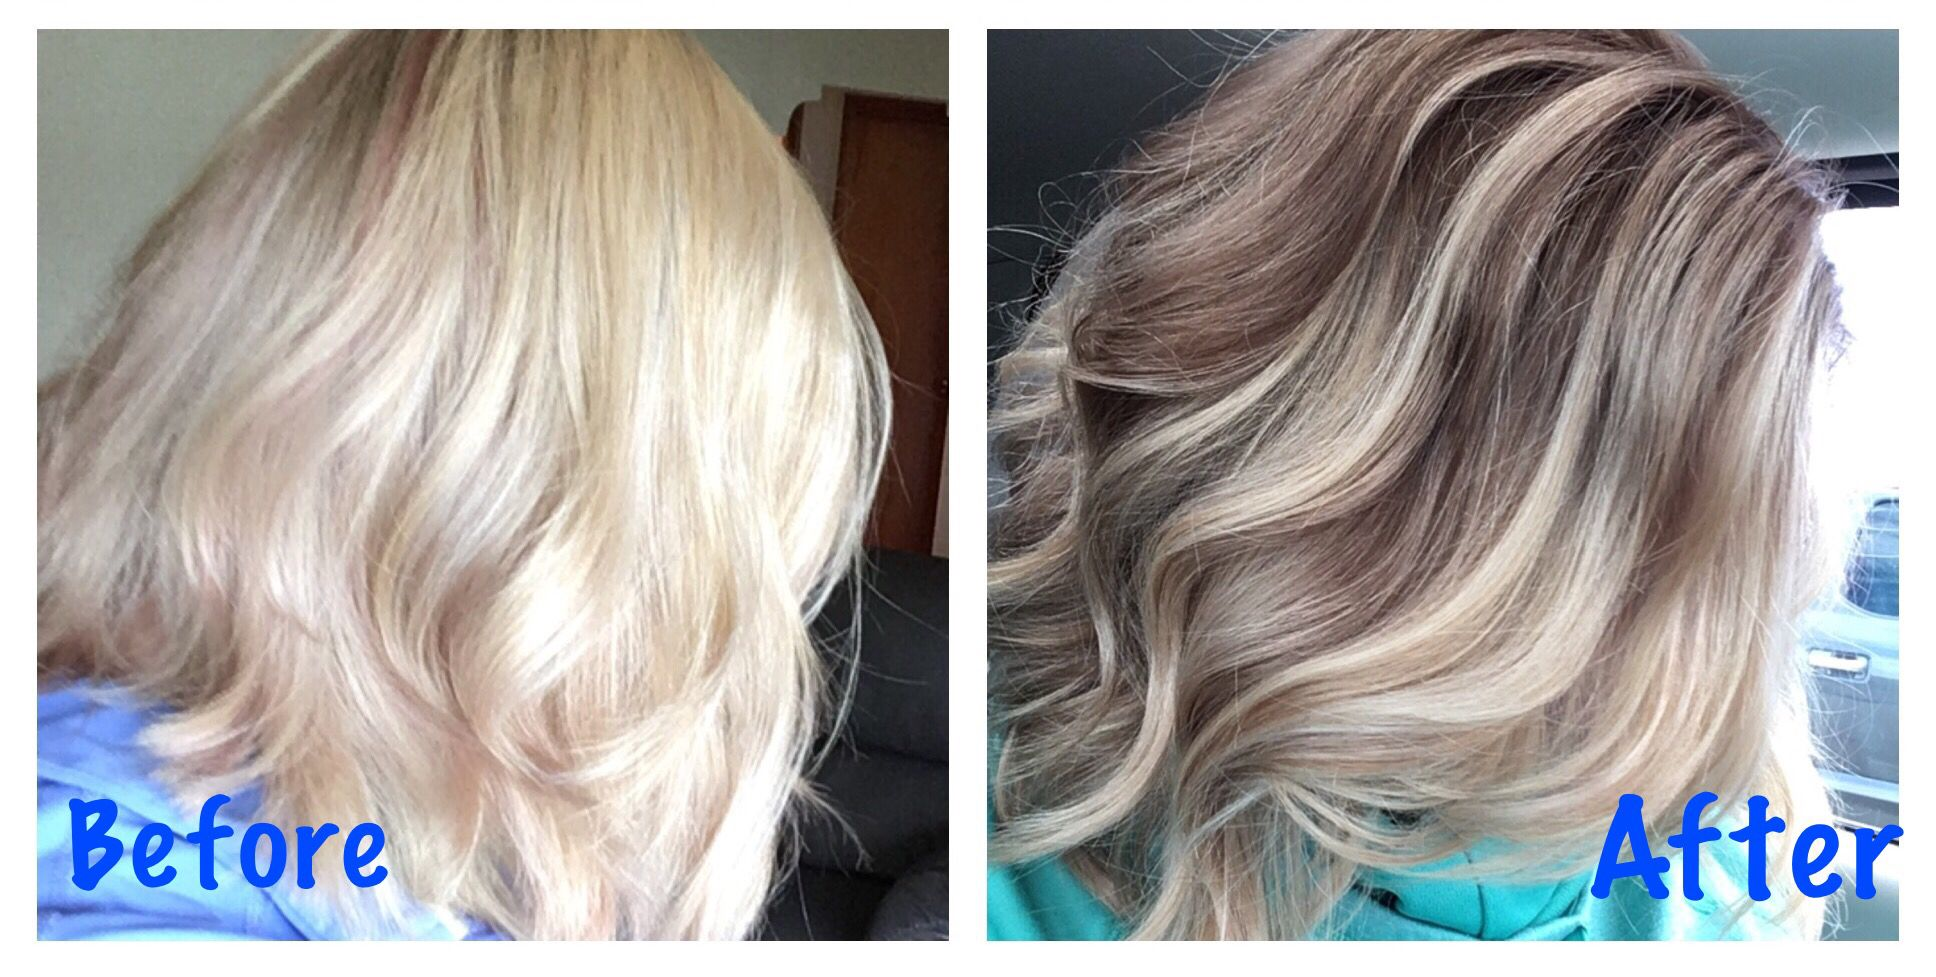 Before And After Color Correction For Over Highlighted Hair Lowlights Added In A Reverse Color Balayage Hair Highlights Color Correction Hair Reverse Balayage